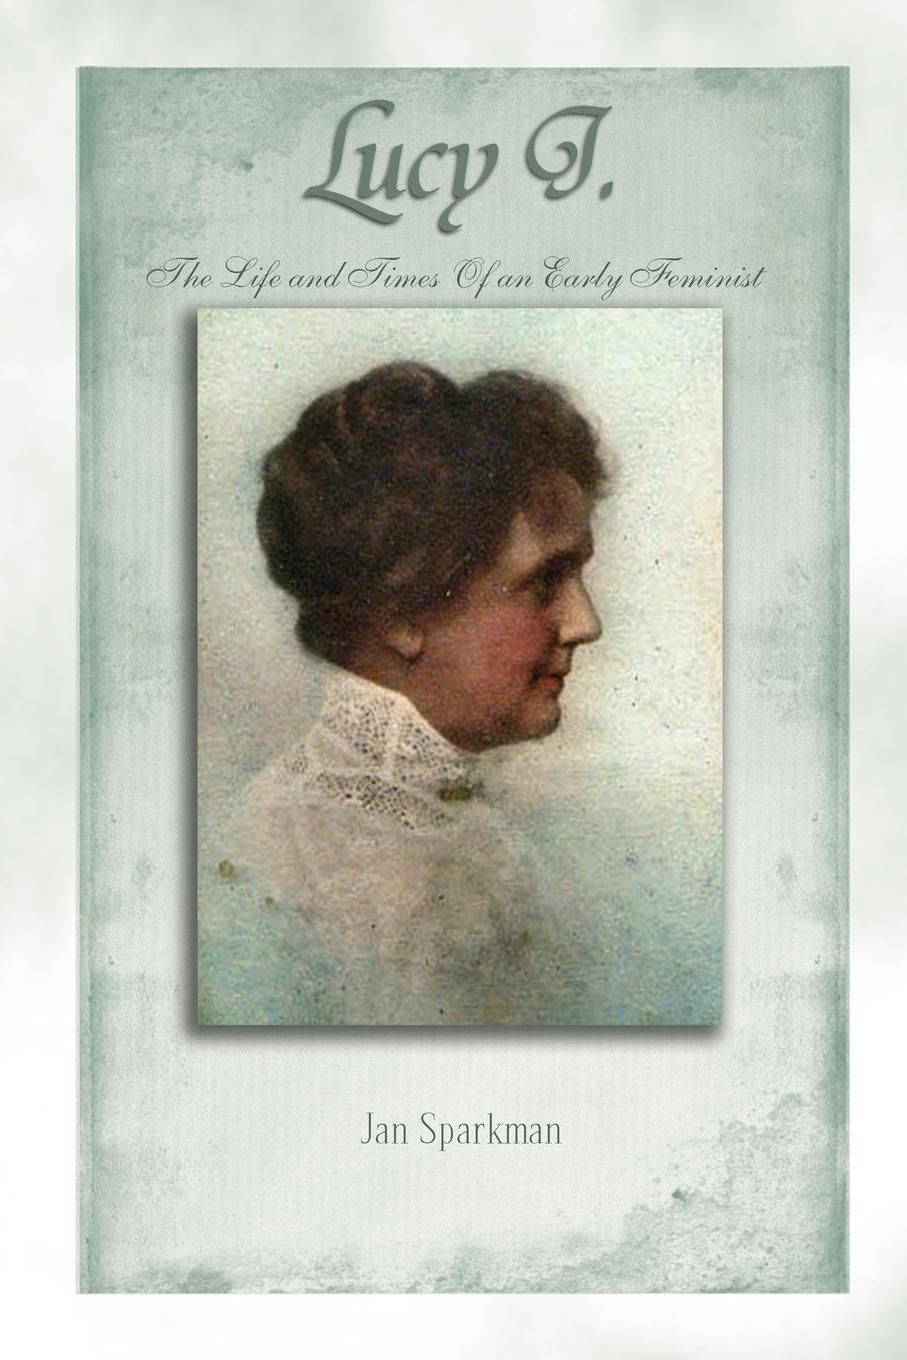 Jan Sparkman Lucy J. The Life and Times of an Early Feminist jerome j my life and times